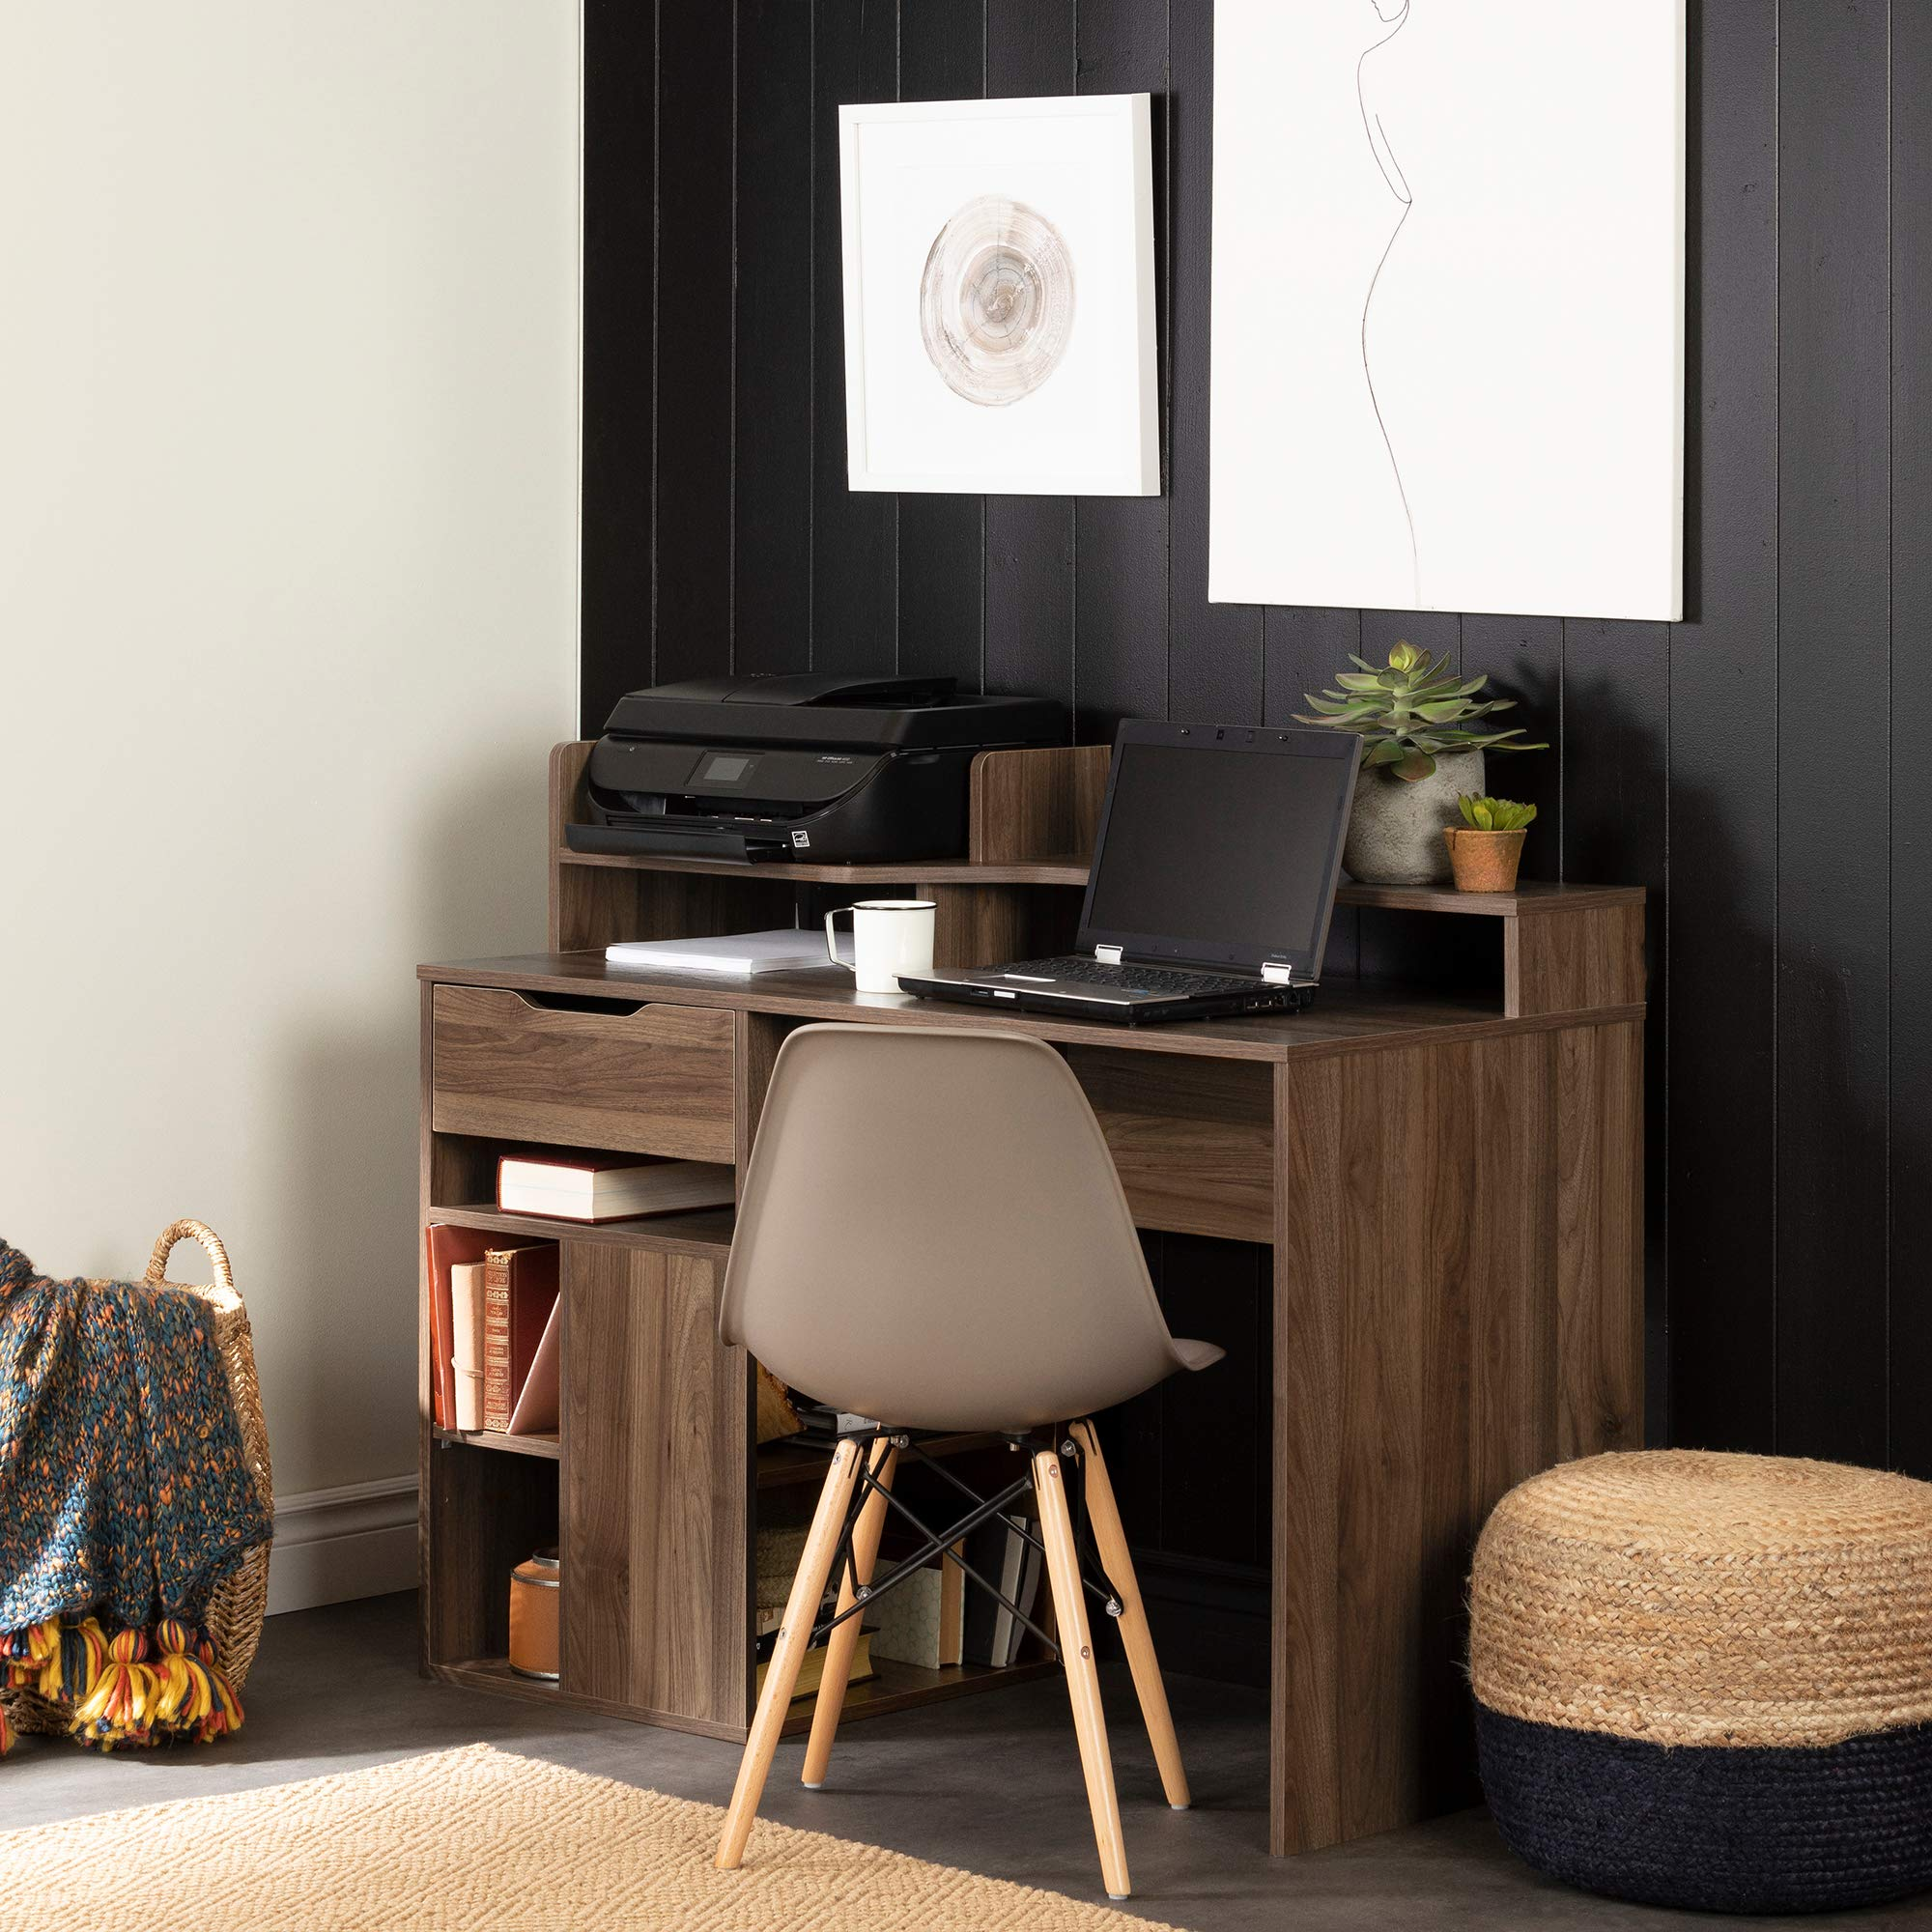 South Shore 12224 Holland Desk with Hutch and Storage, Natural Walnut by South Shore